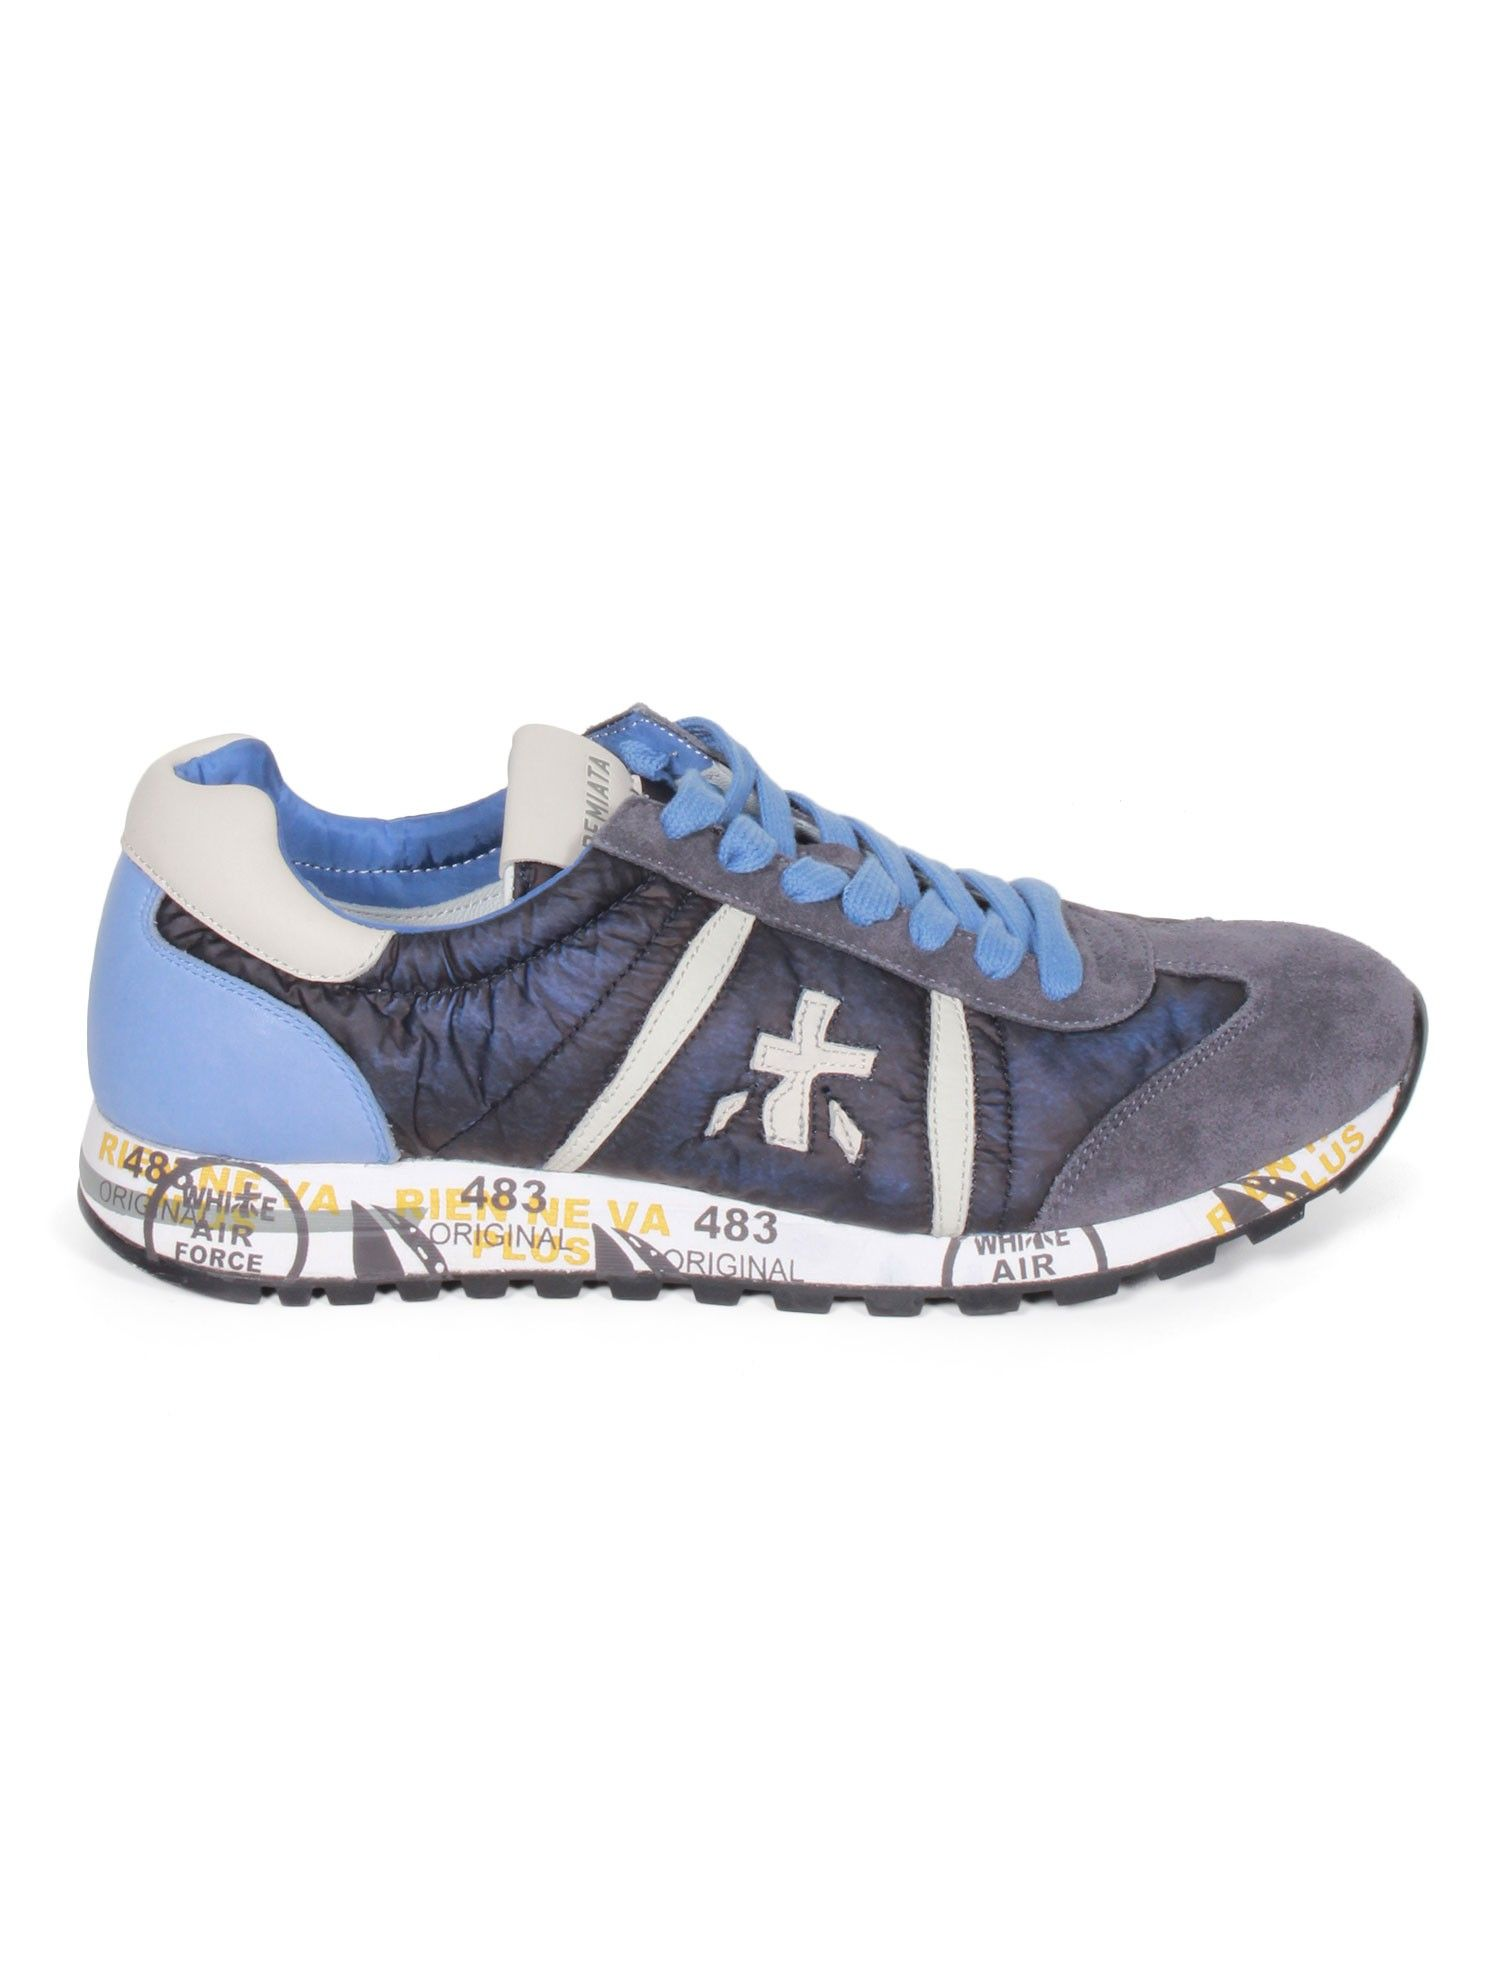 PREMIATA White Lucy men's sneakers in washed dark blue nylon with details  in leather and nubuck.